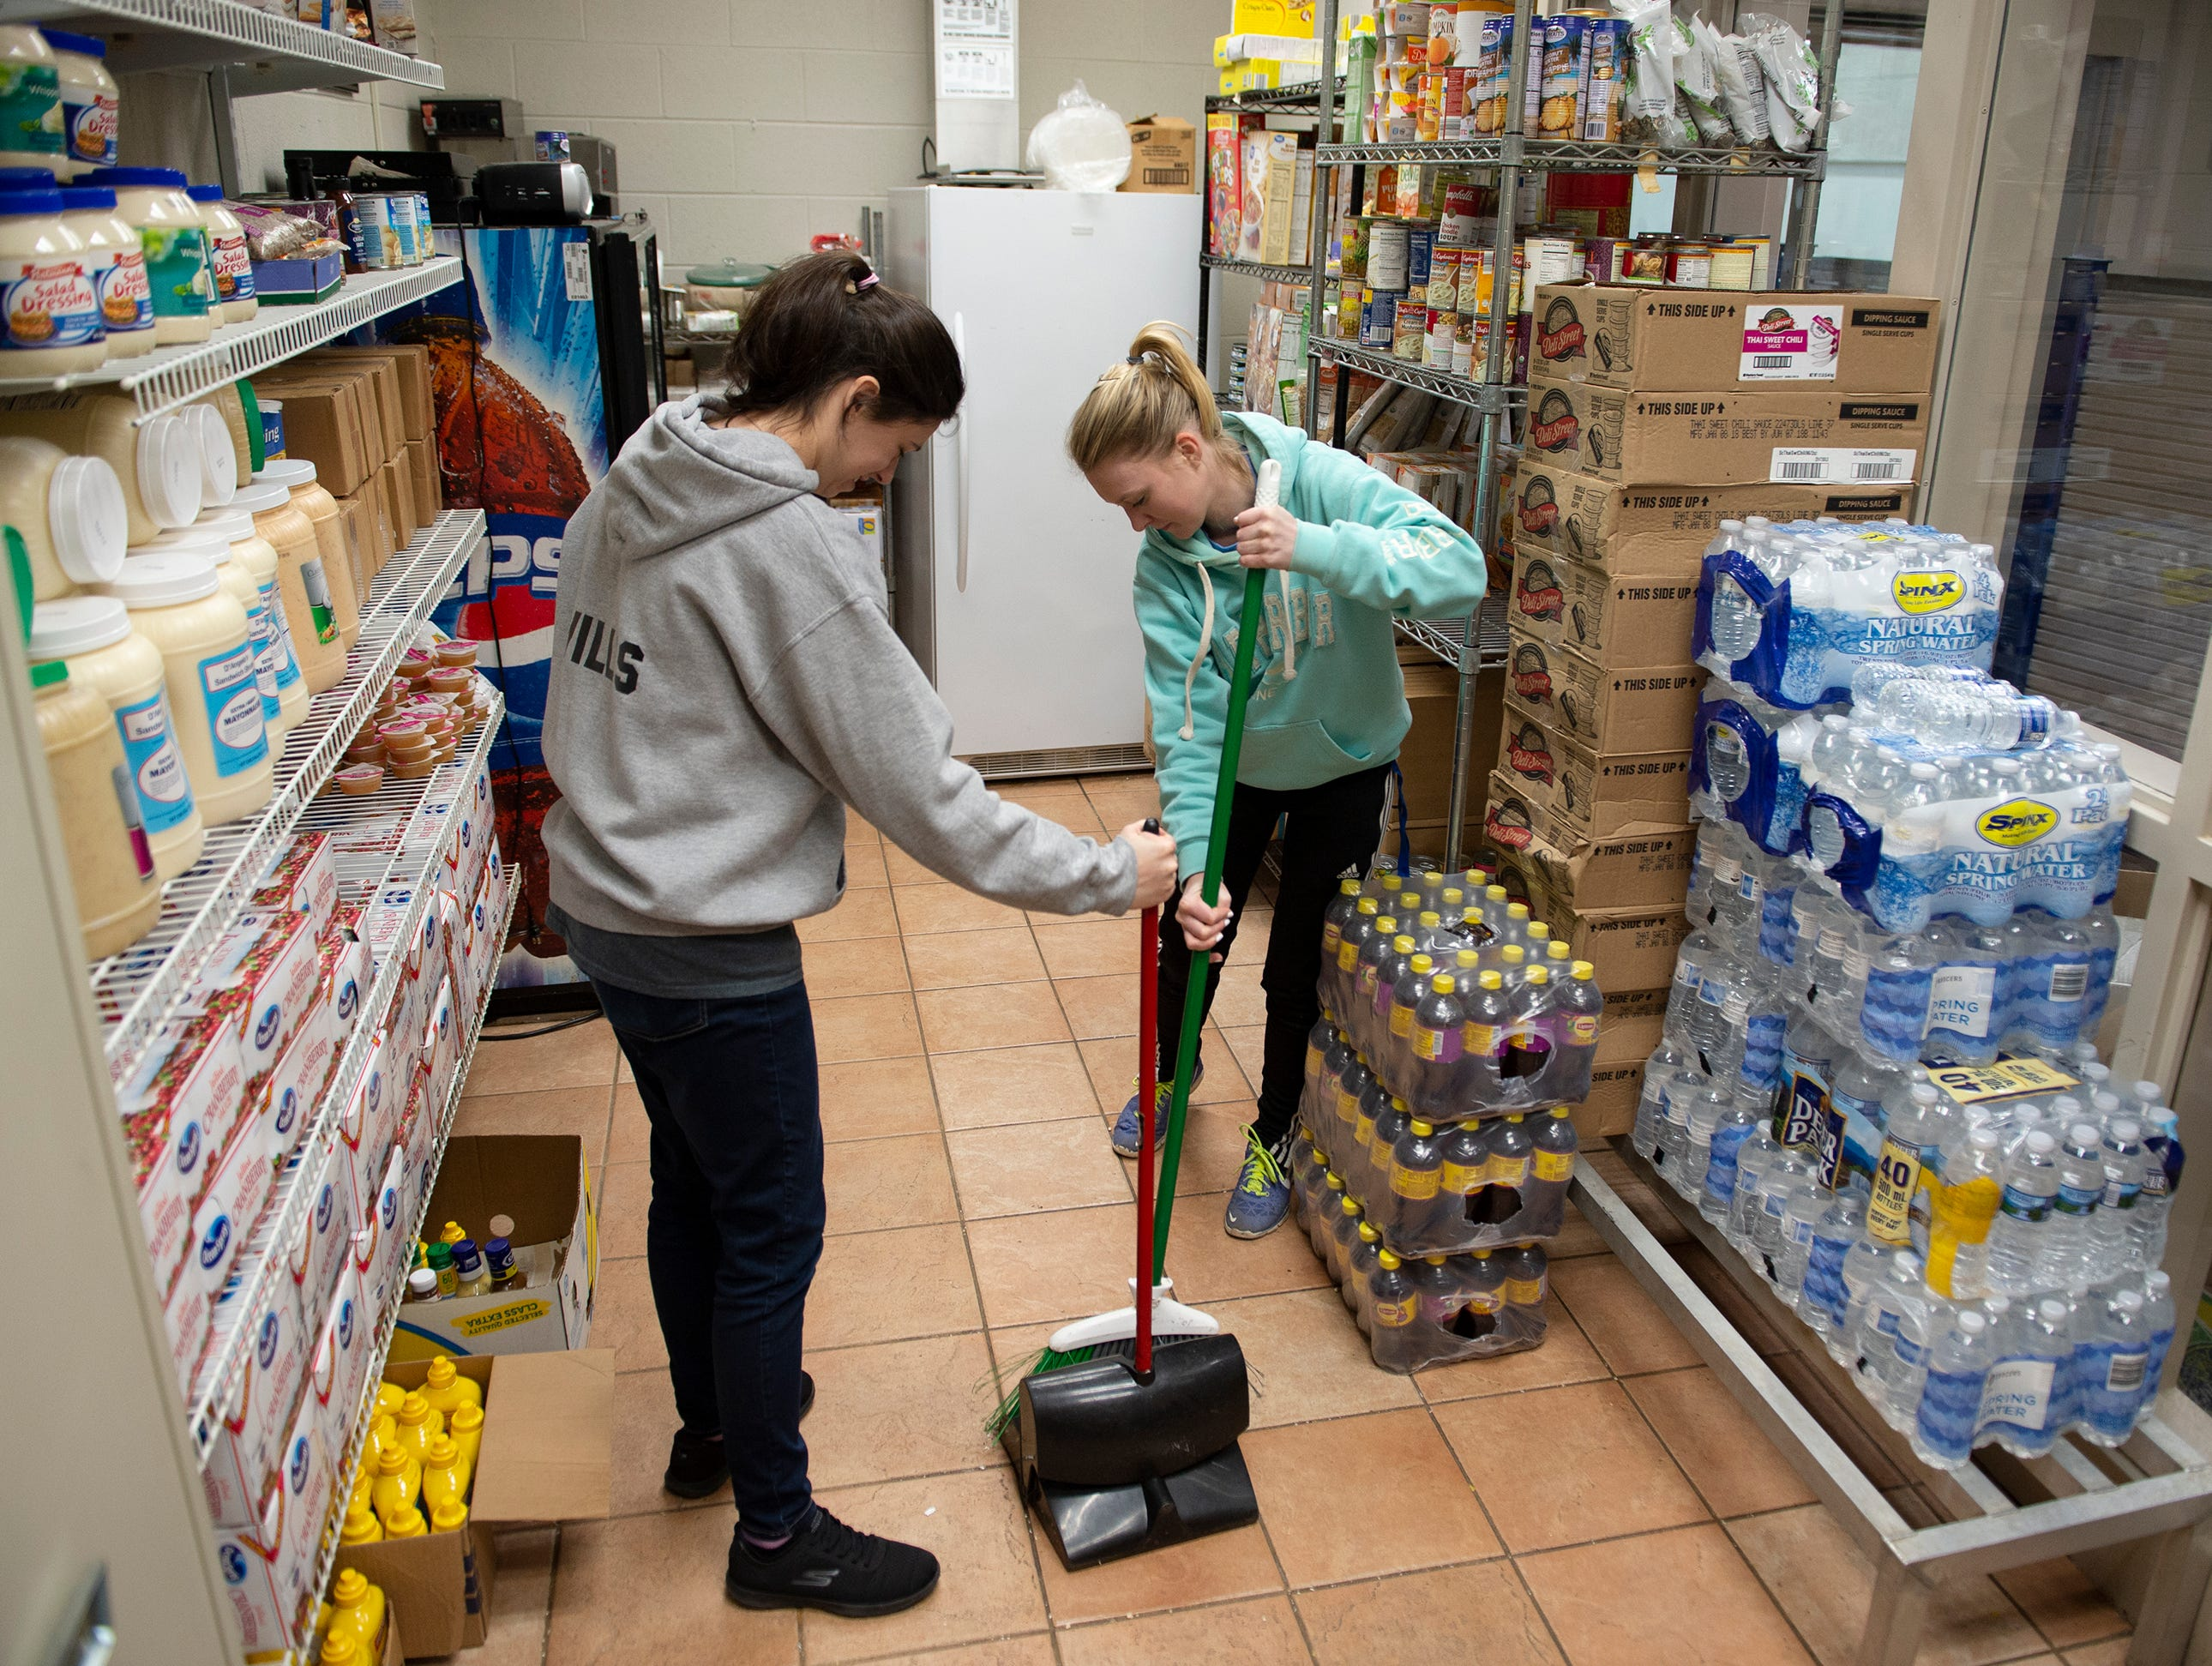 Bob Jones University freshman Kayla Willis (left) and sophomore Jillian Sitton sweep inside Miracle HillÕs Greenville Rescue Mission on Martin Luther King, Jr. Day Monday, Jan. 21, 2019. Twenty volunteers worked at this location while hundreds of students from Bob Jones University volunteered at places around Greenville.